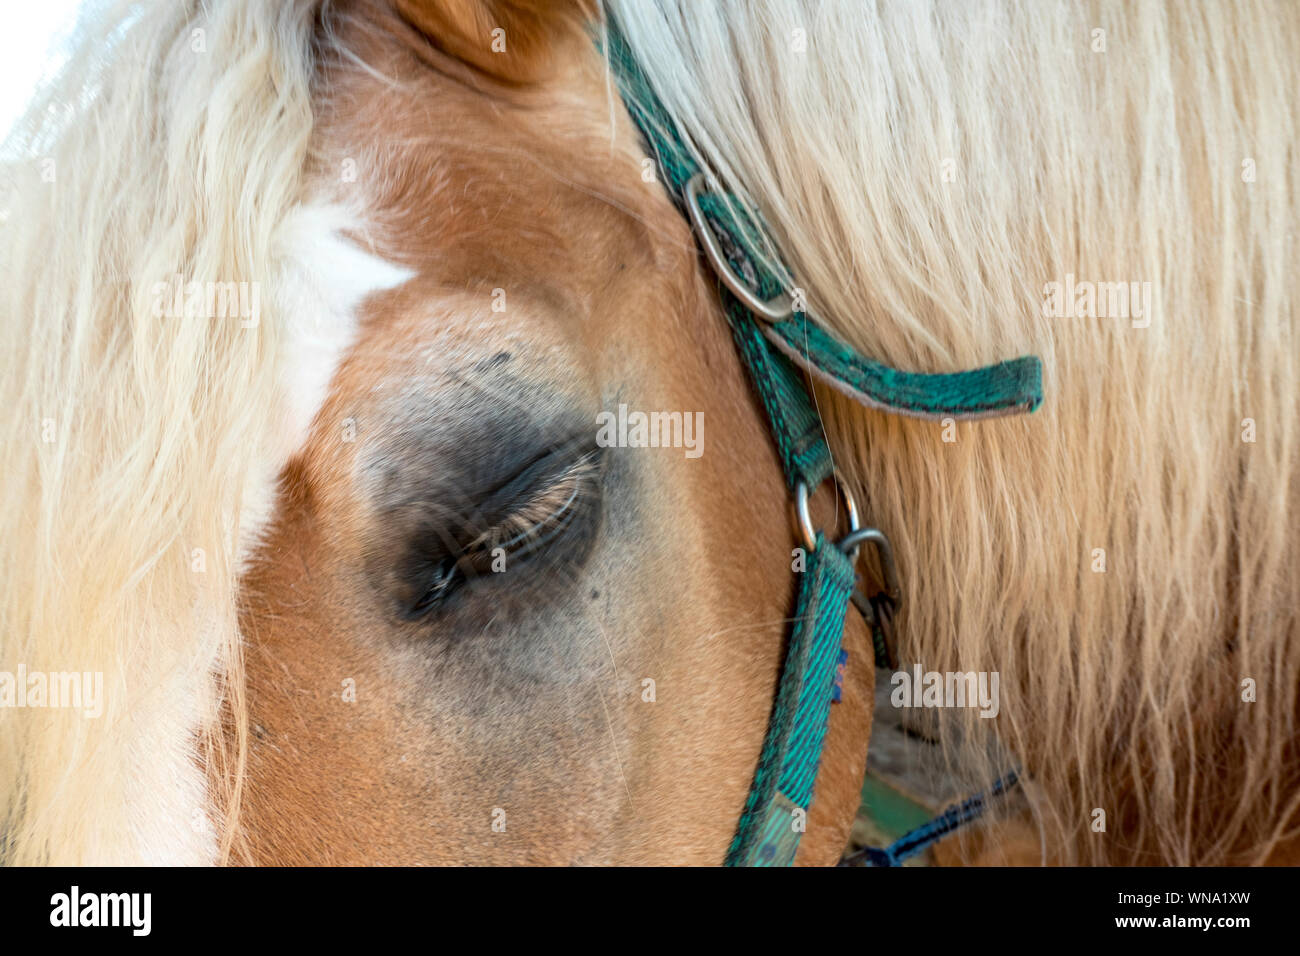 Eye of a horse in close-up view Stock Photo